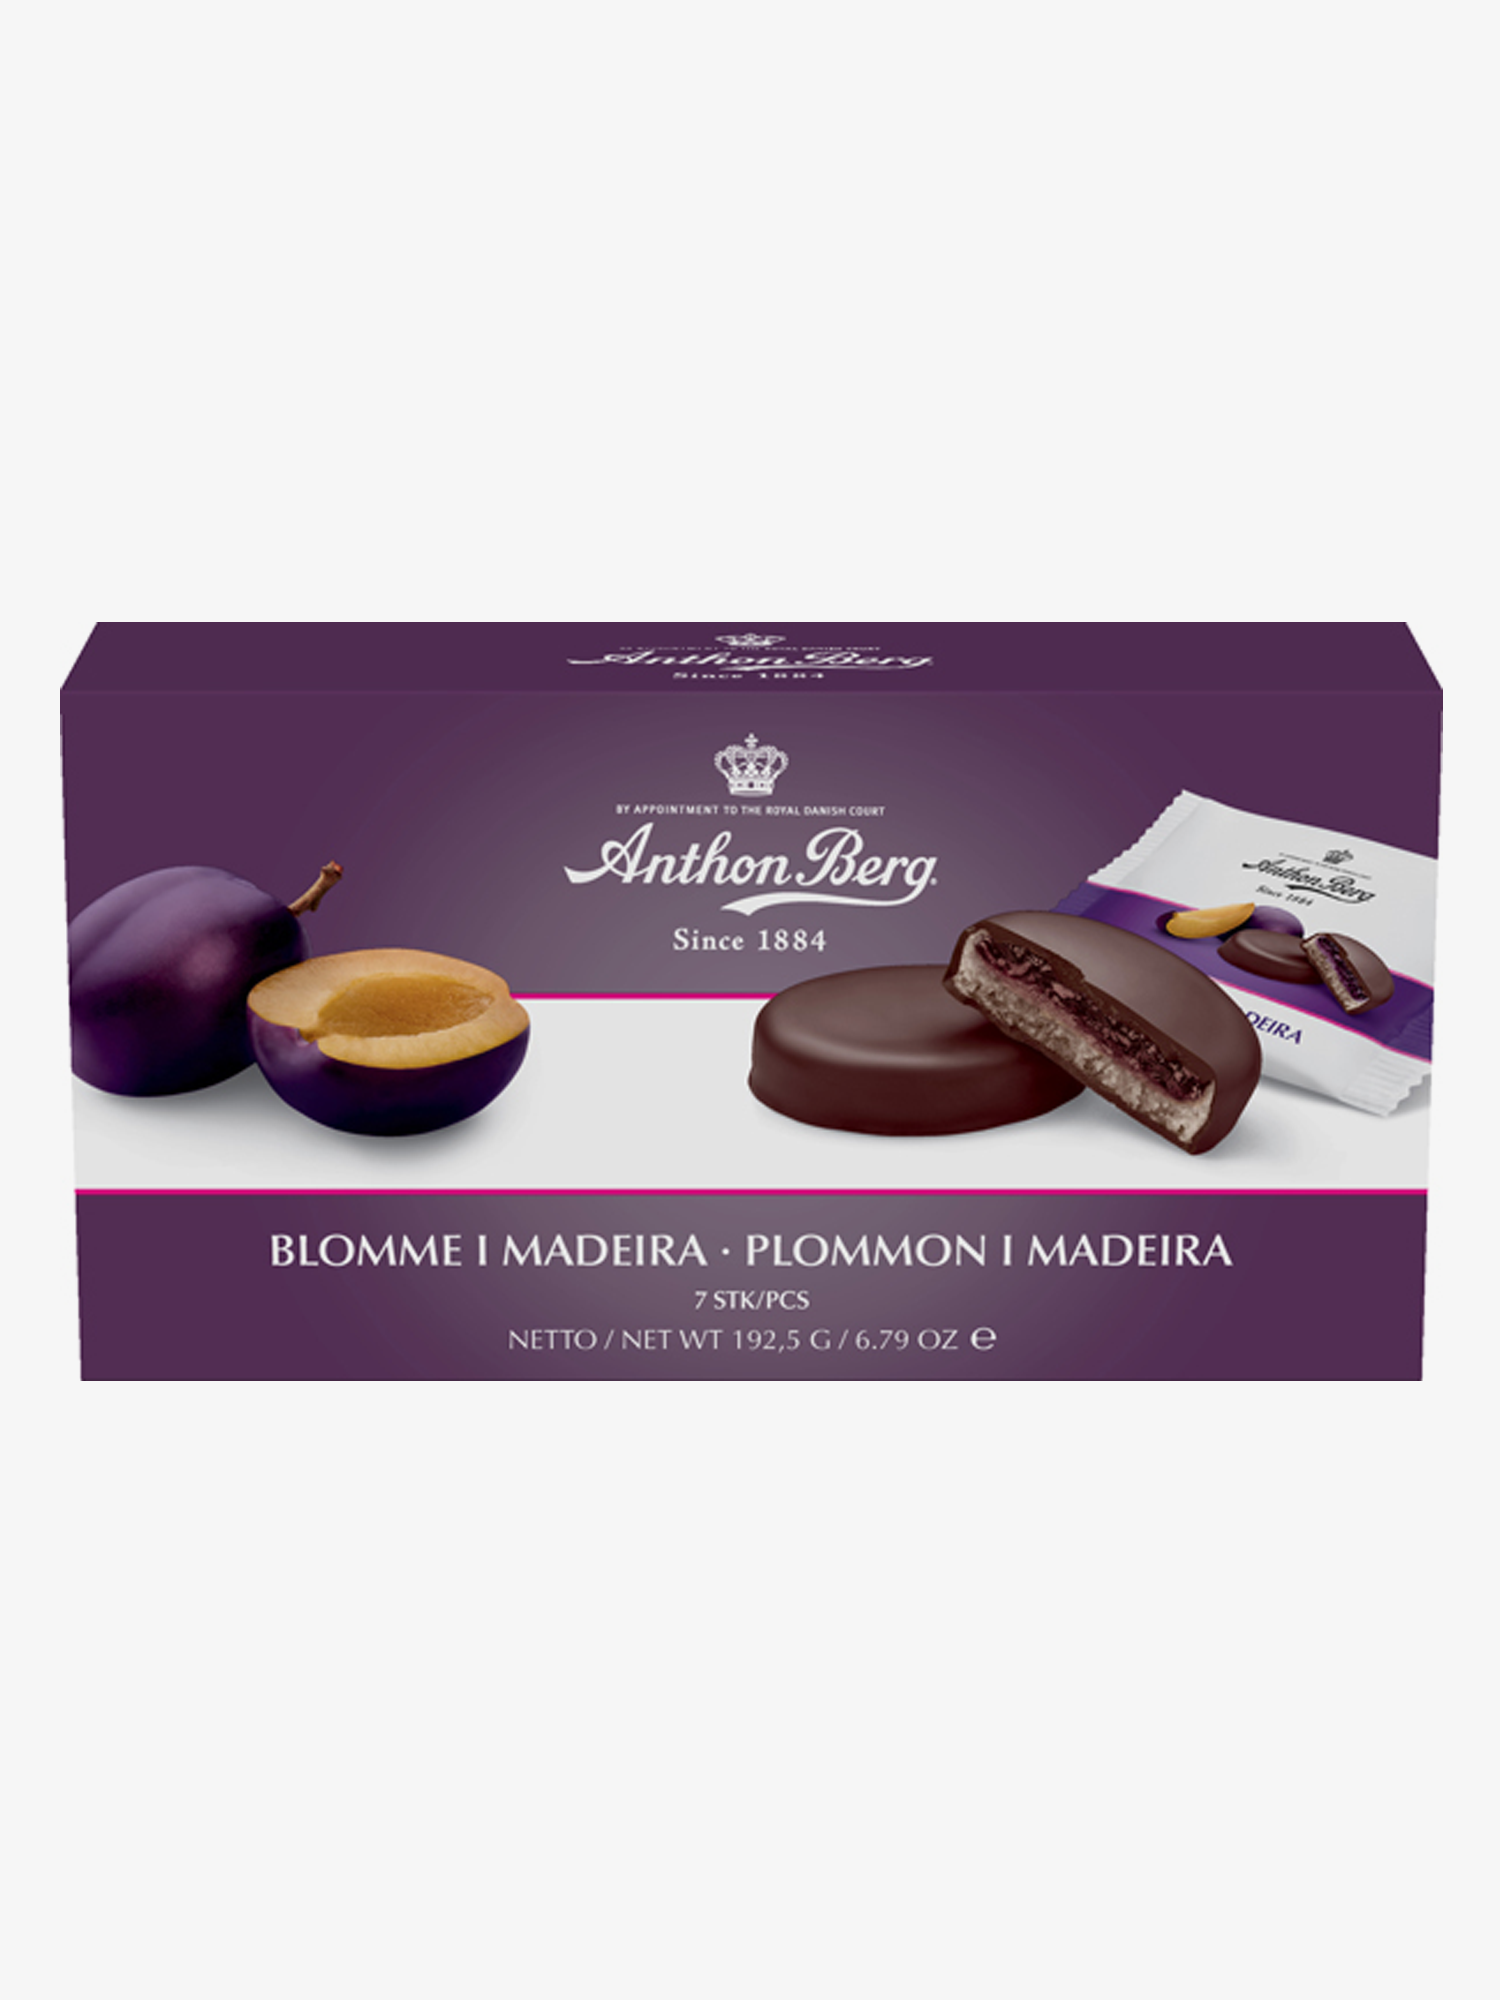 Blomme i Madeira - dark chocolate with marzipan and plum